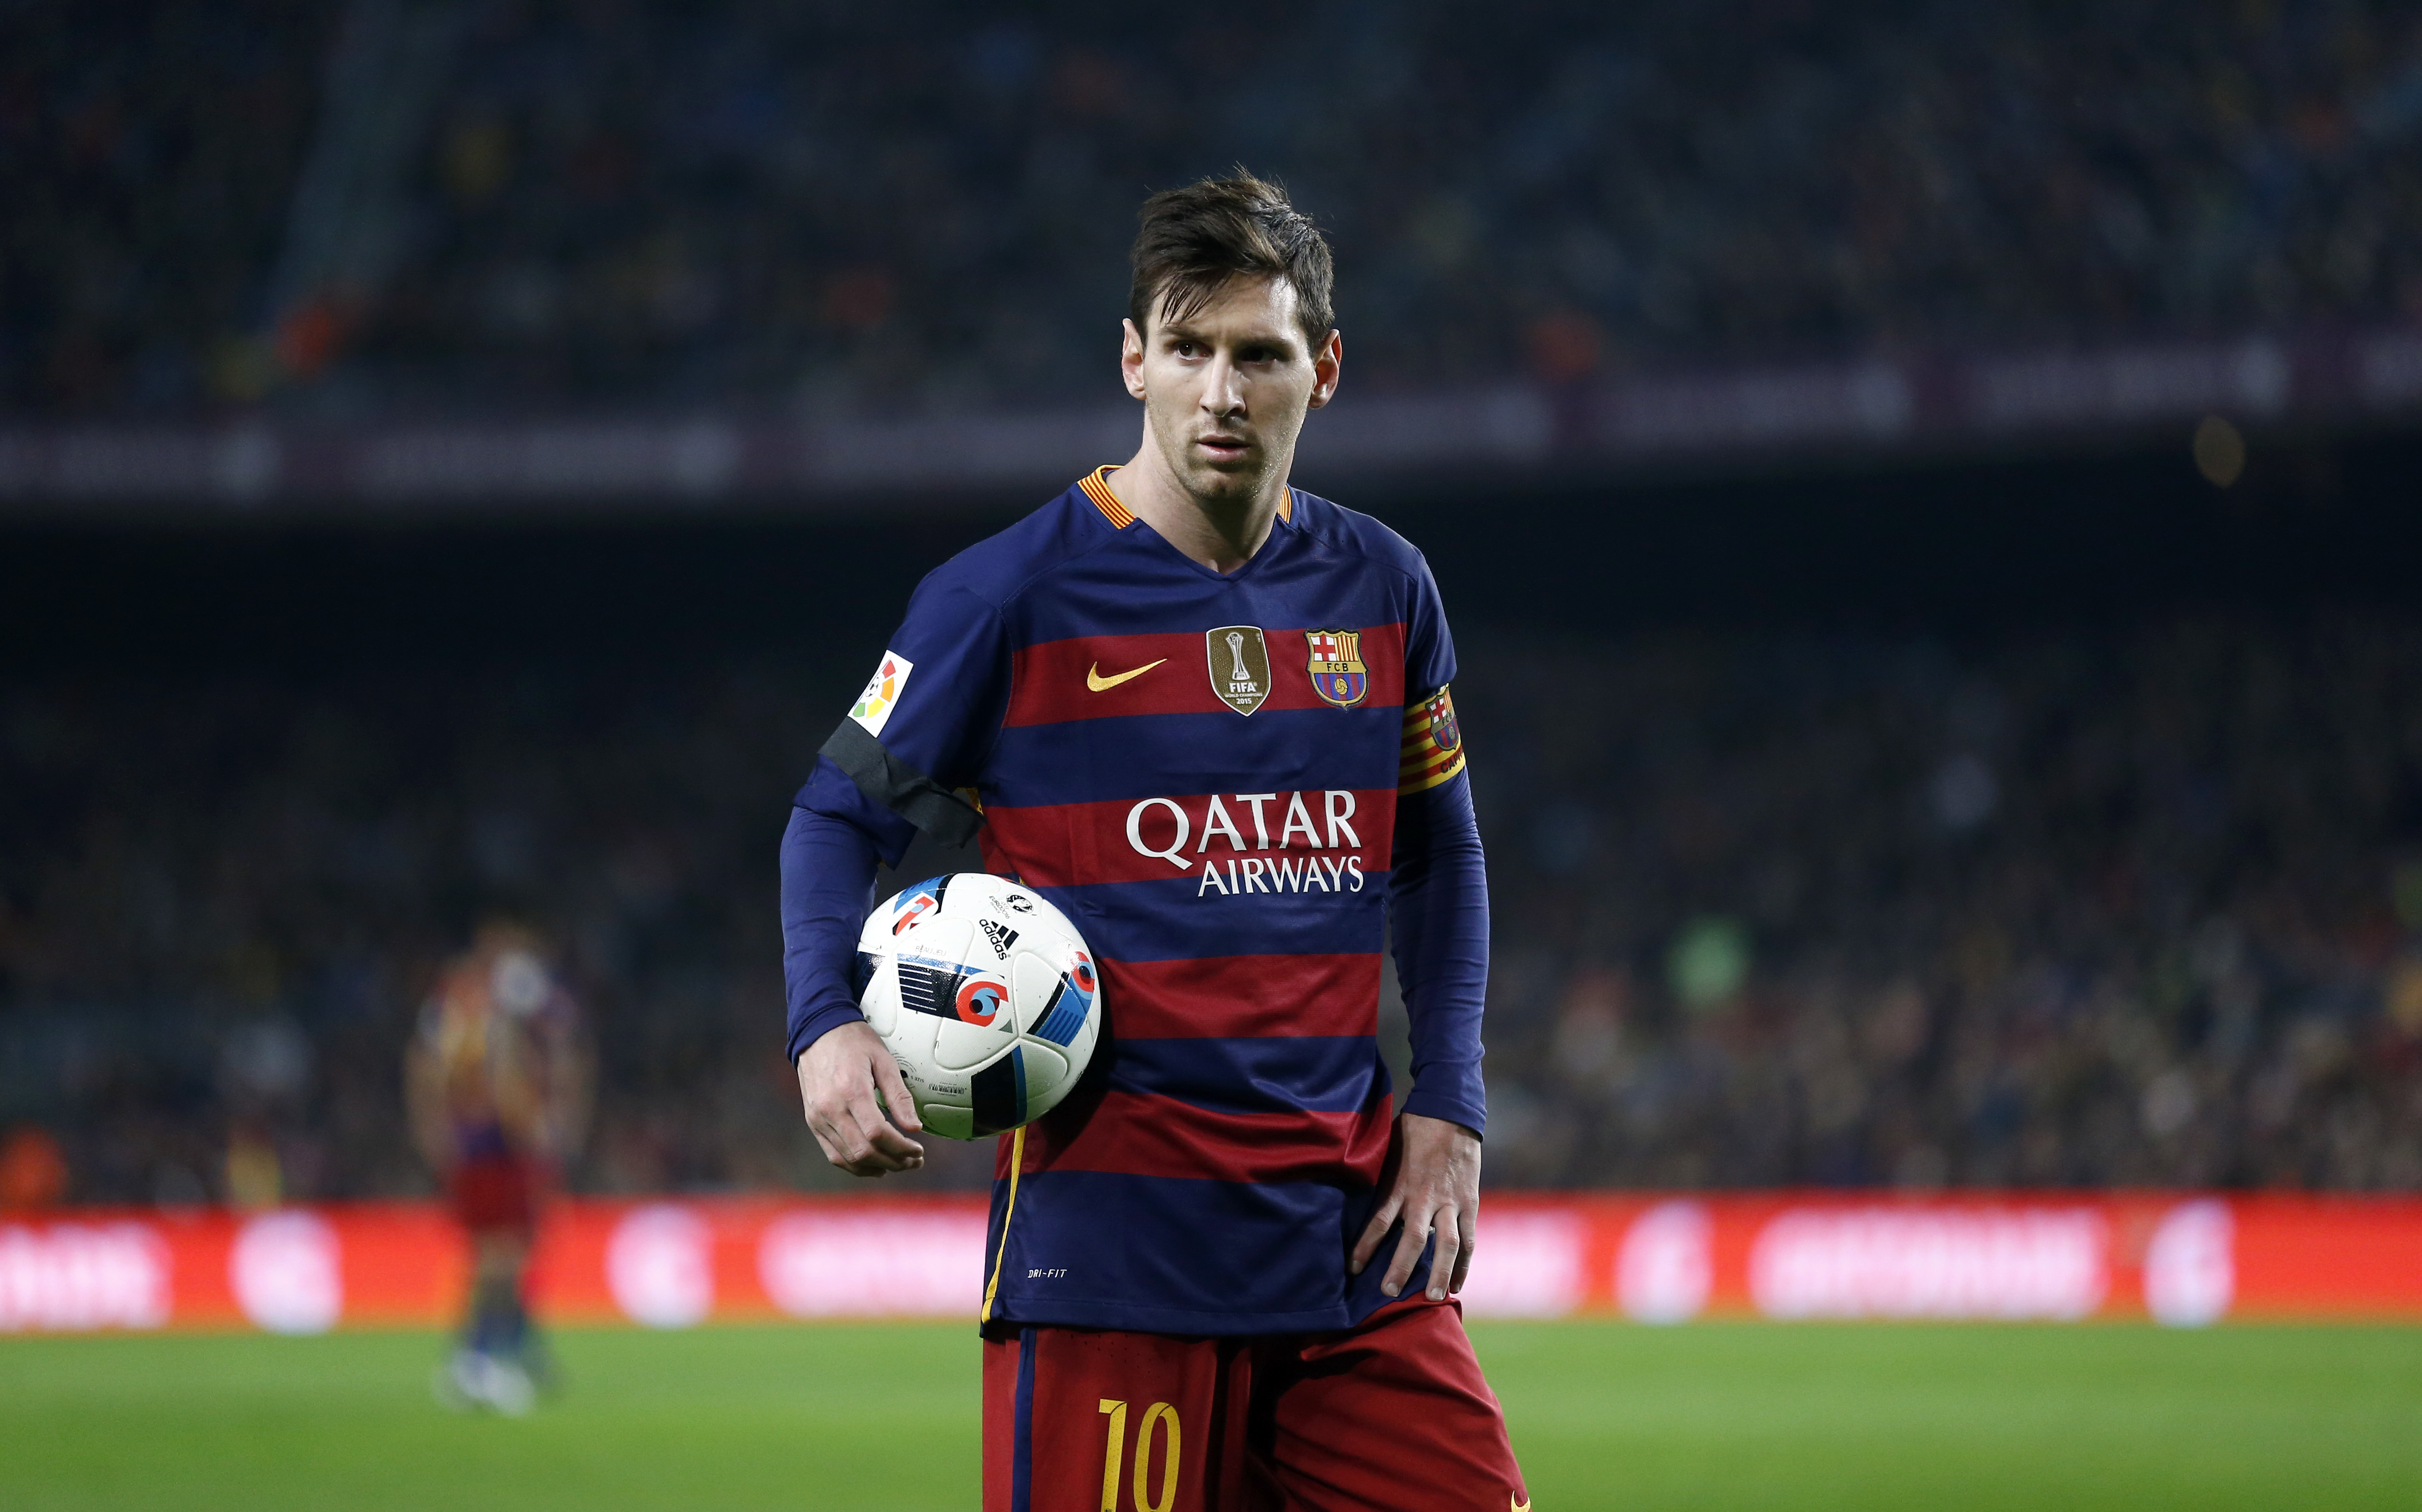 FC Barcelona's Lionel Messi holds the ball during a quarterfinal, second leg, Copa del Rey soccer match against Athletic Bilbao at the Camp Nou stadium in Barcelona, Spain, Wednesday, Jan. 27, 2016. (AP Photo/Manu Fernandez)